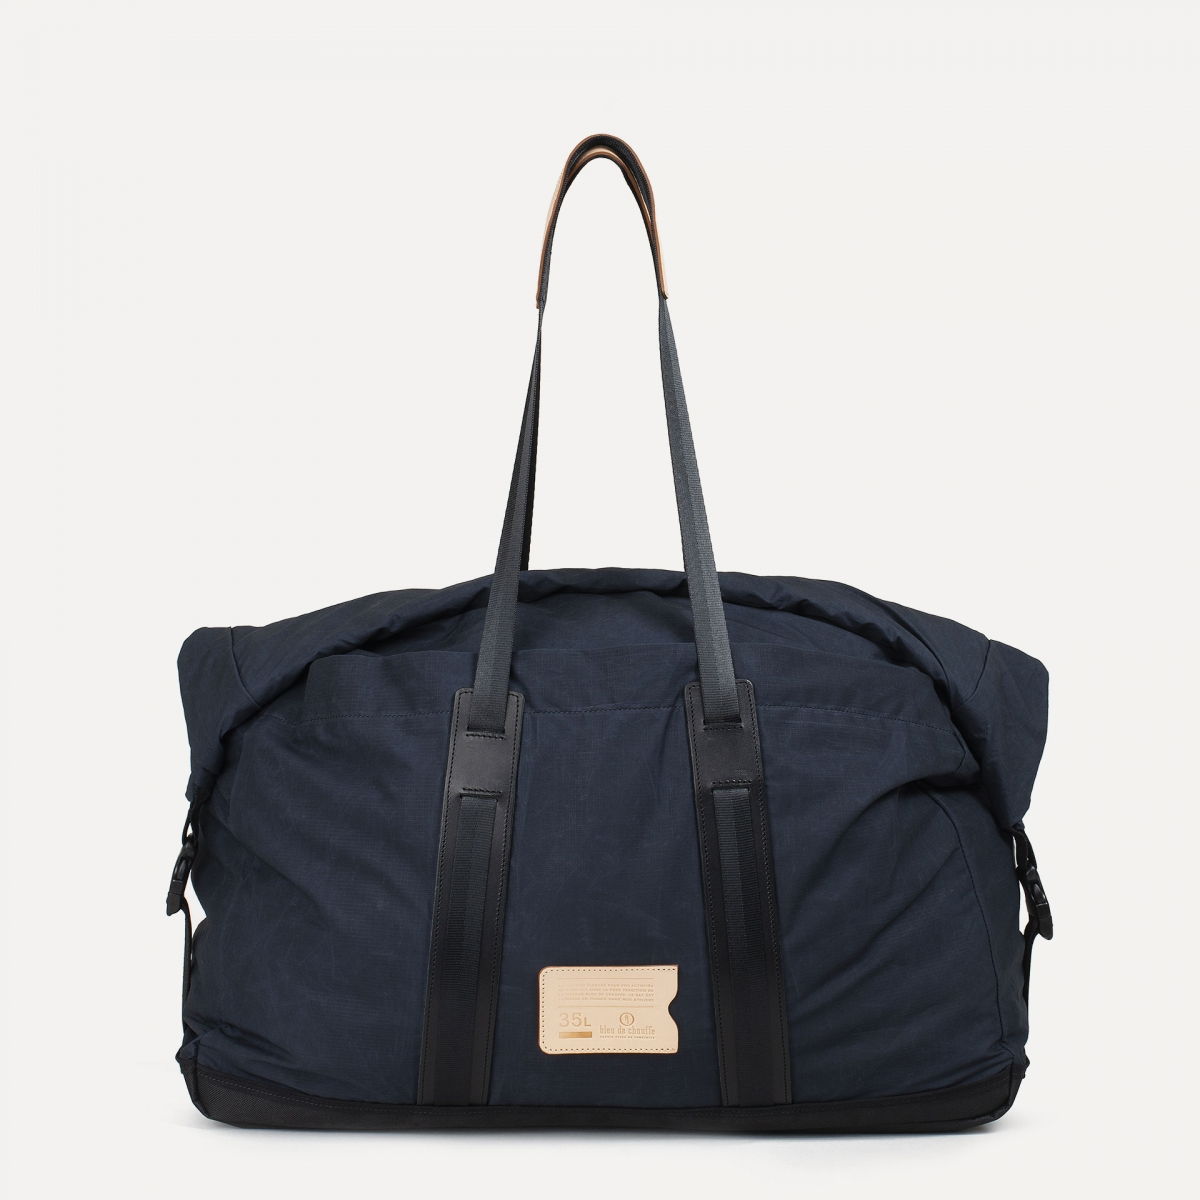 35L Baroud Travel bag - Hague Blue (image n°1)